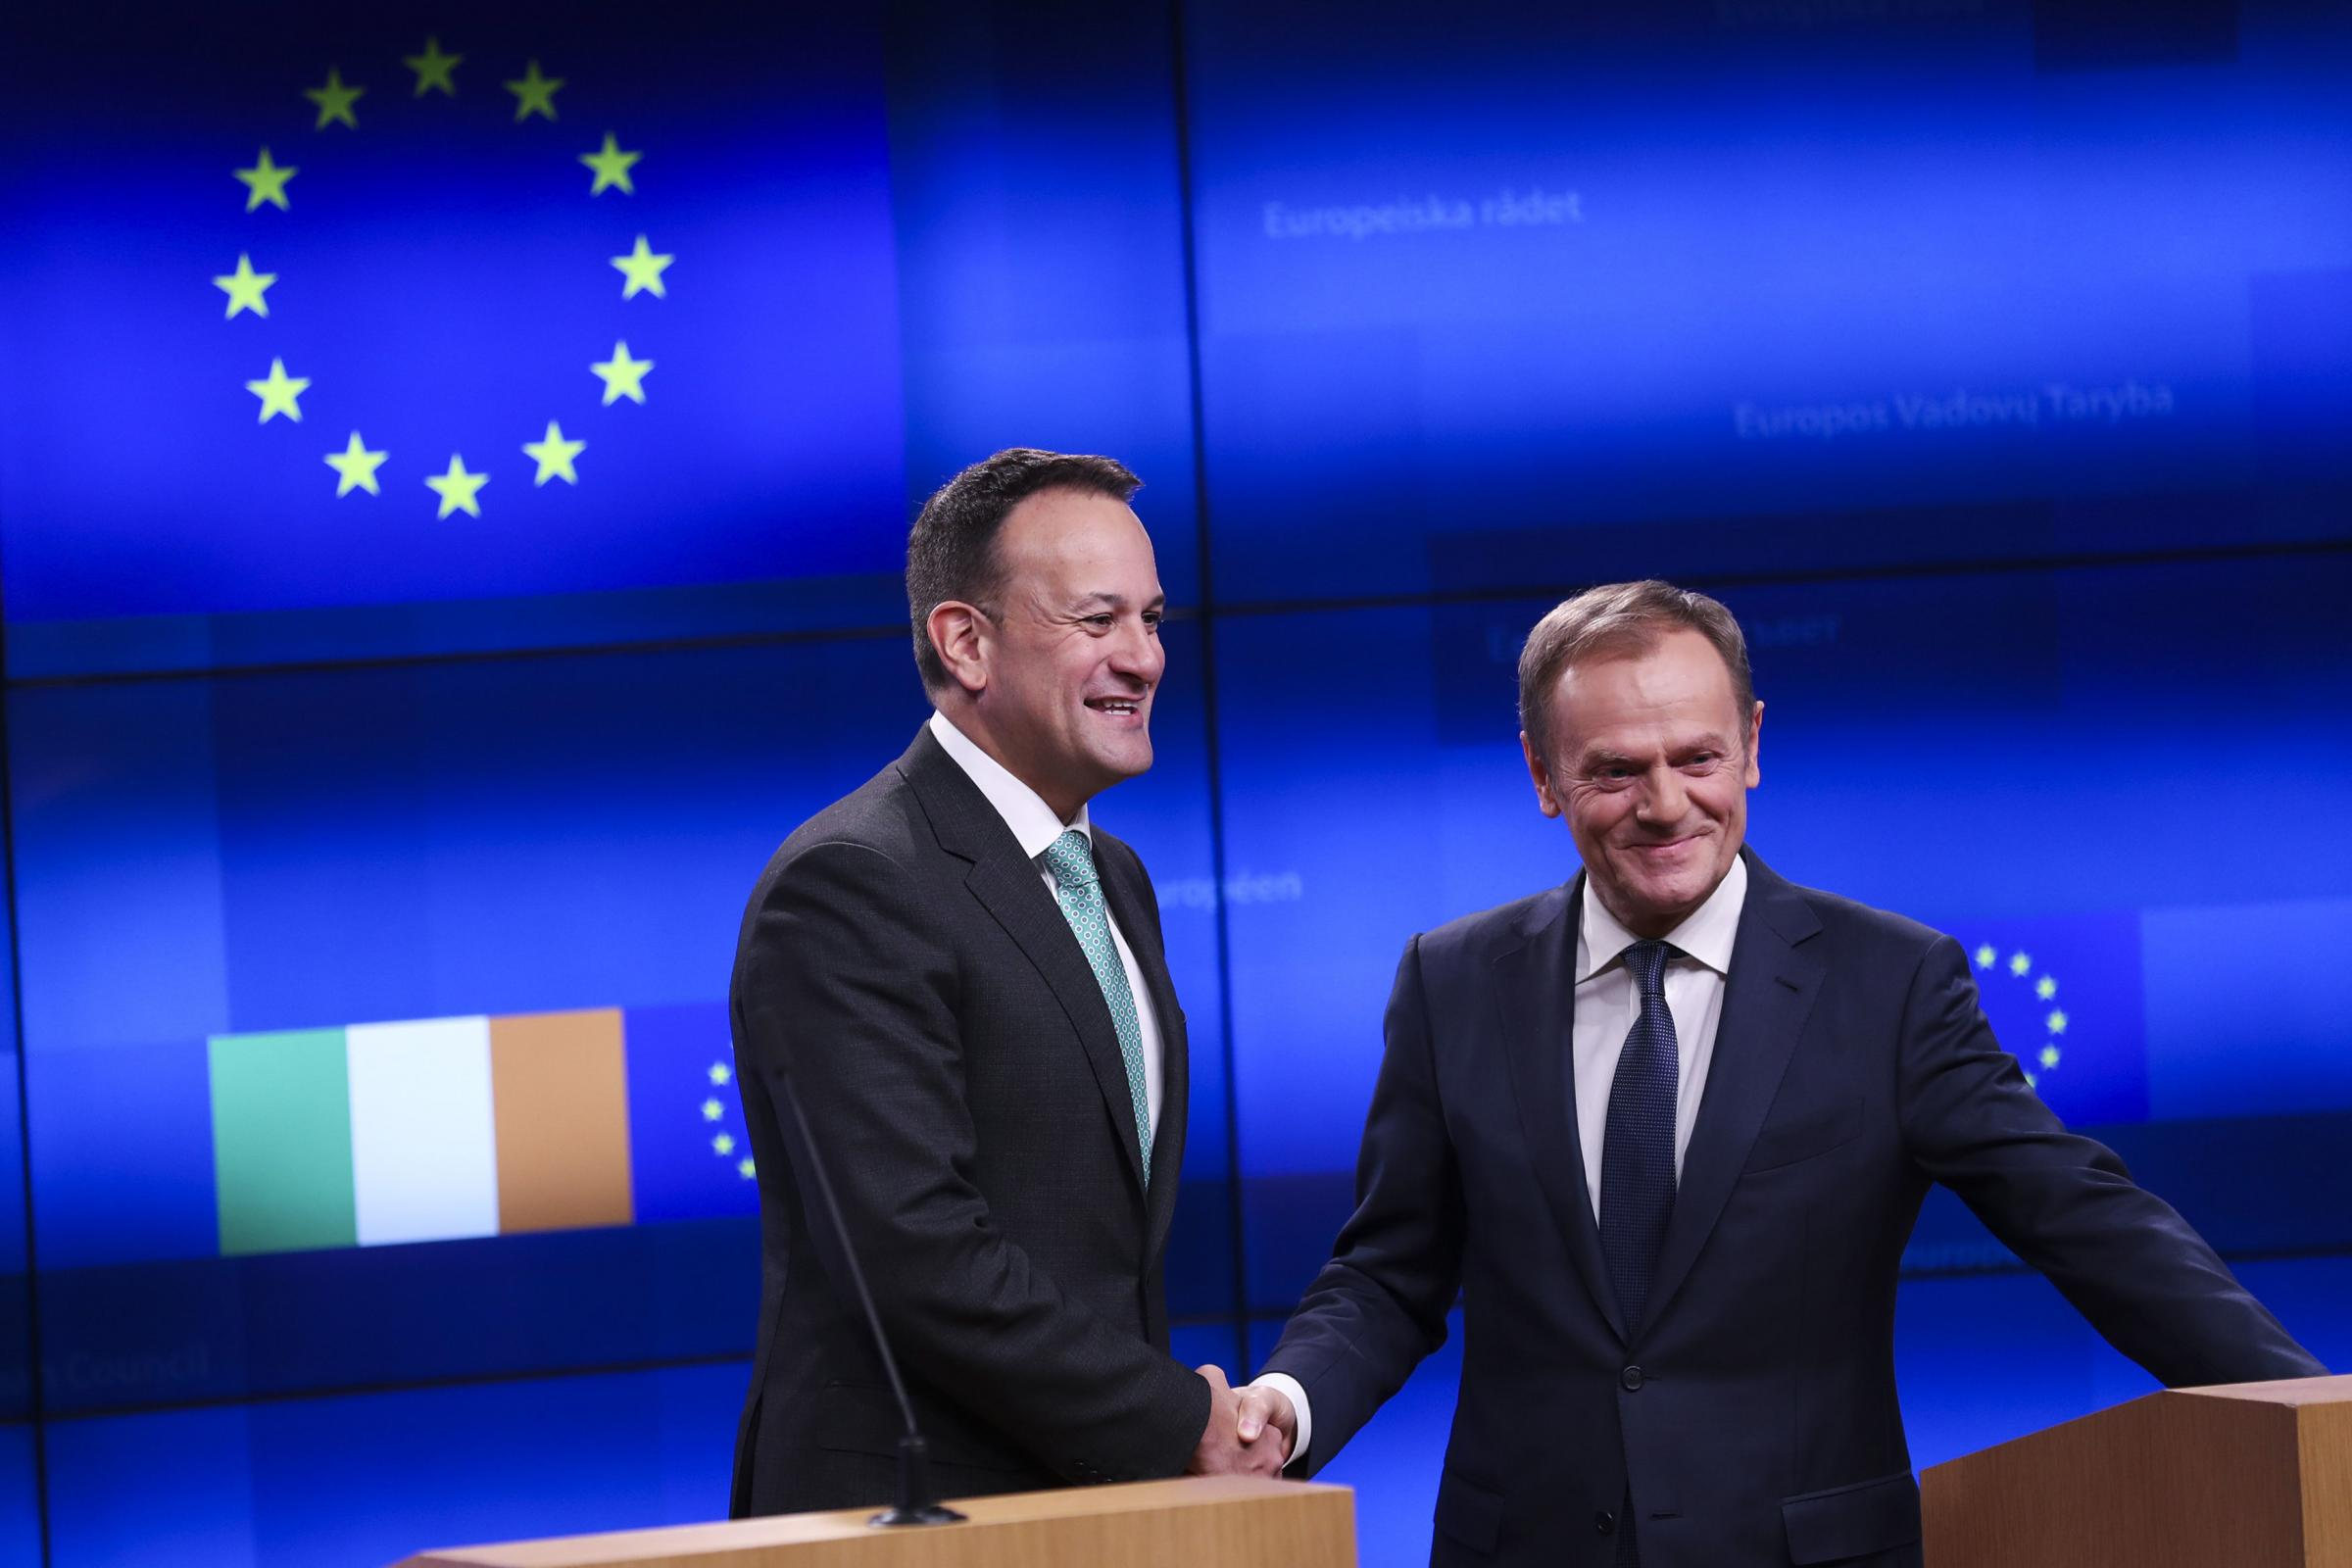 Irish premier Leo Varadkar and EU Council president Donald Tusk joined in with a collective phenomenon across Europe